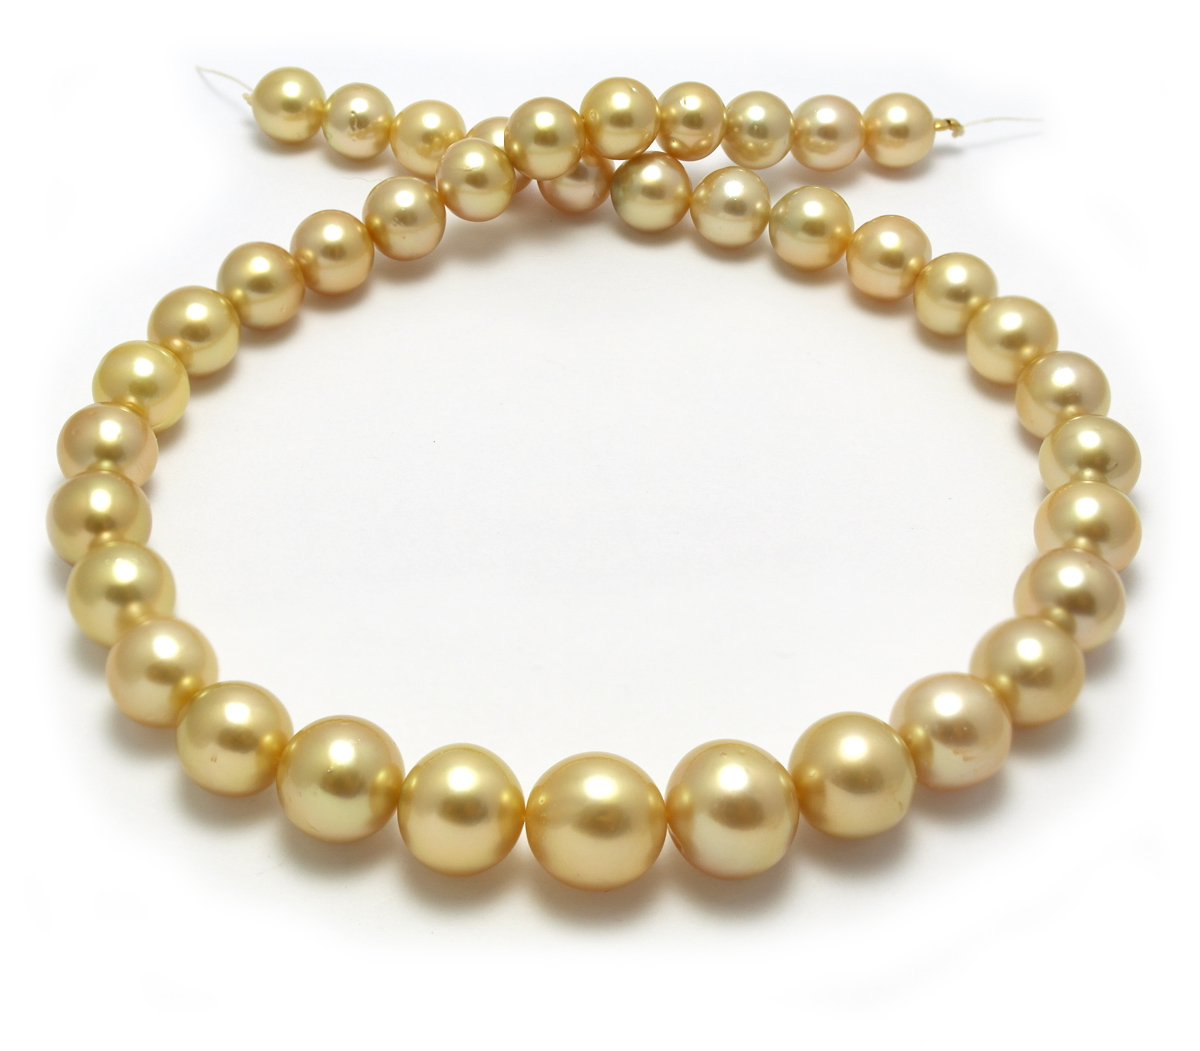 tcdgz necklace with pearls dark gssp gold tincup golden